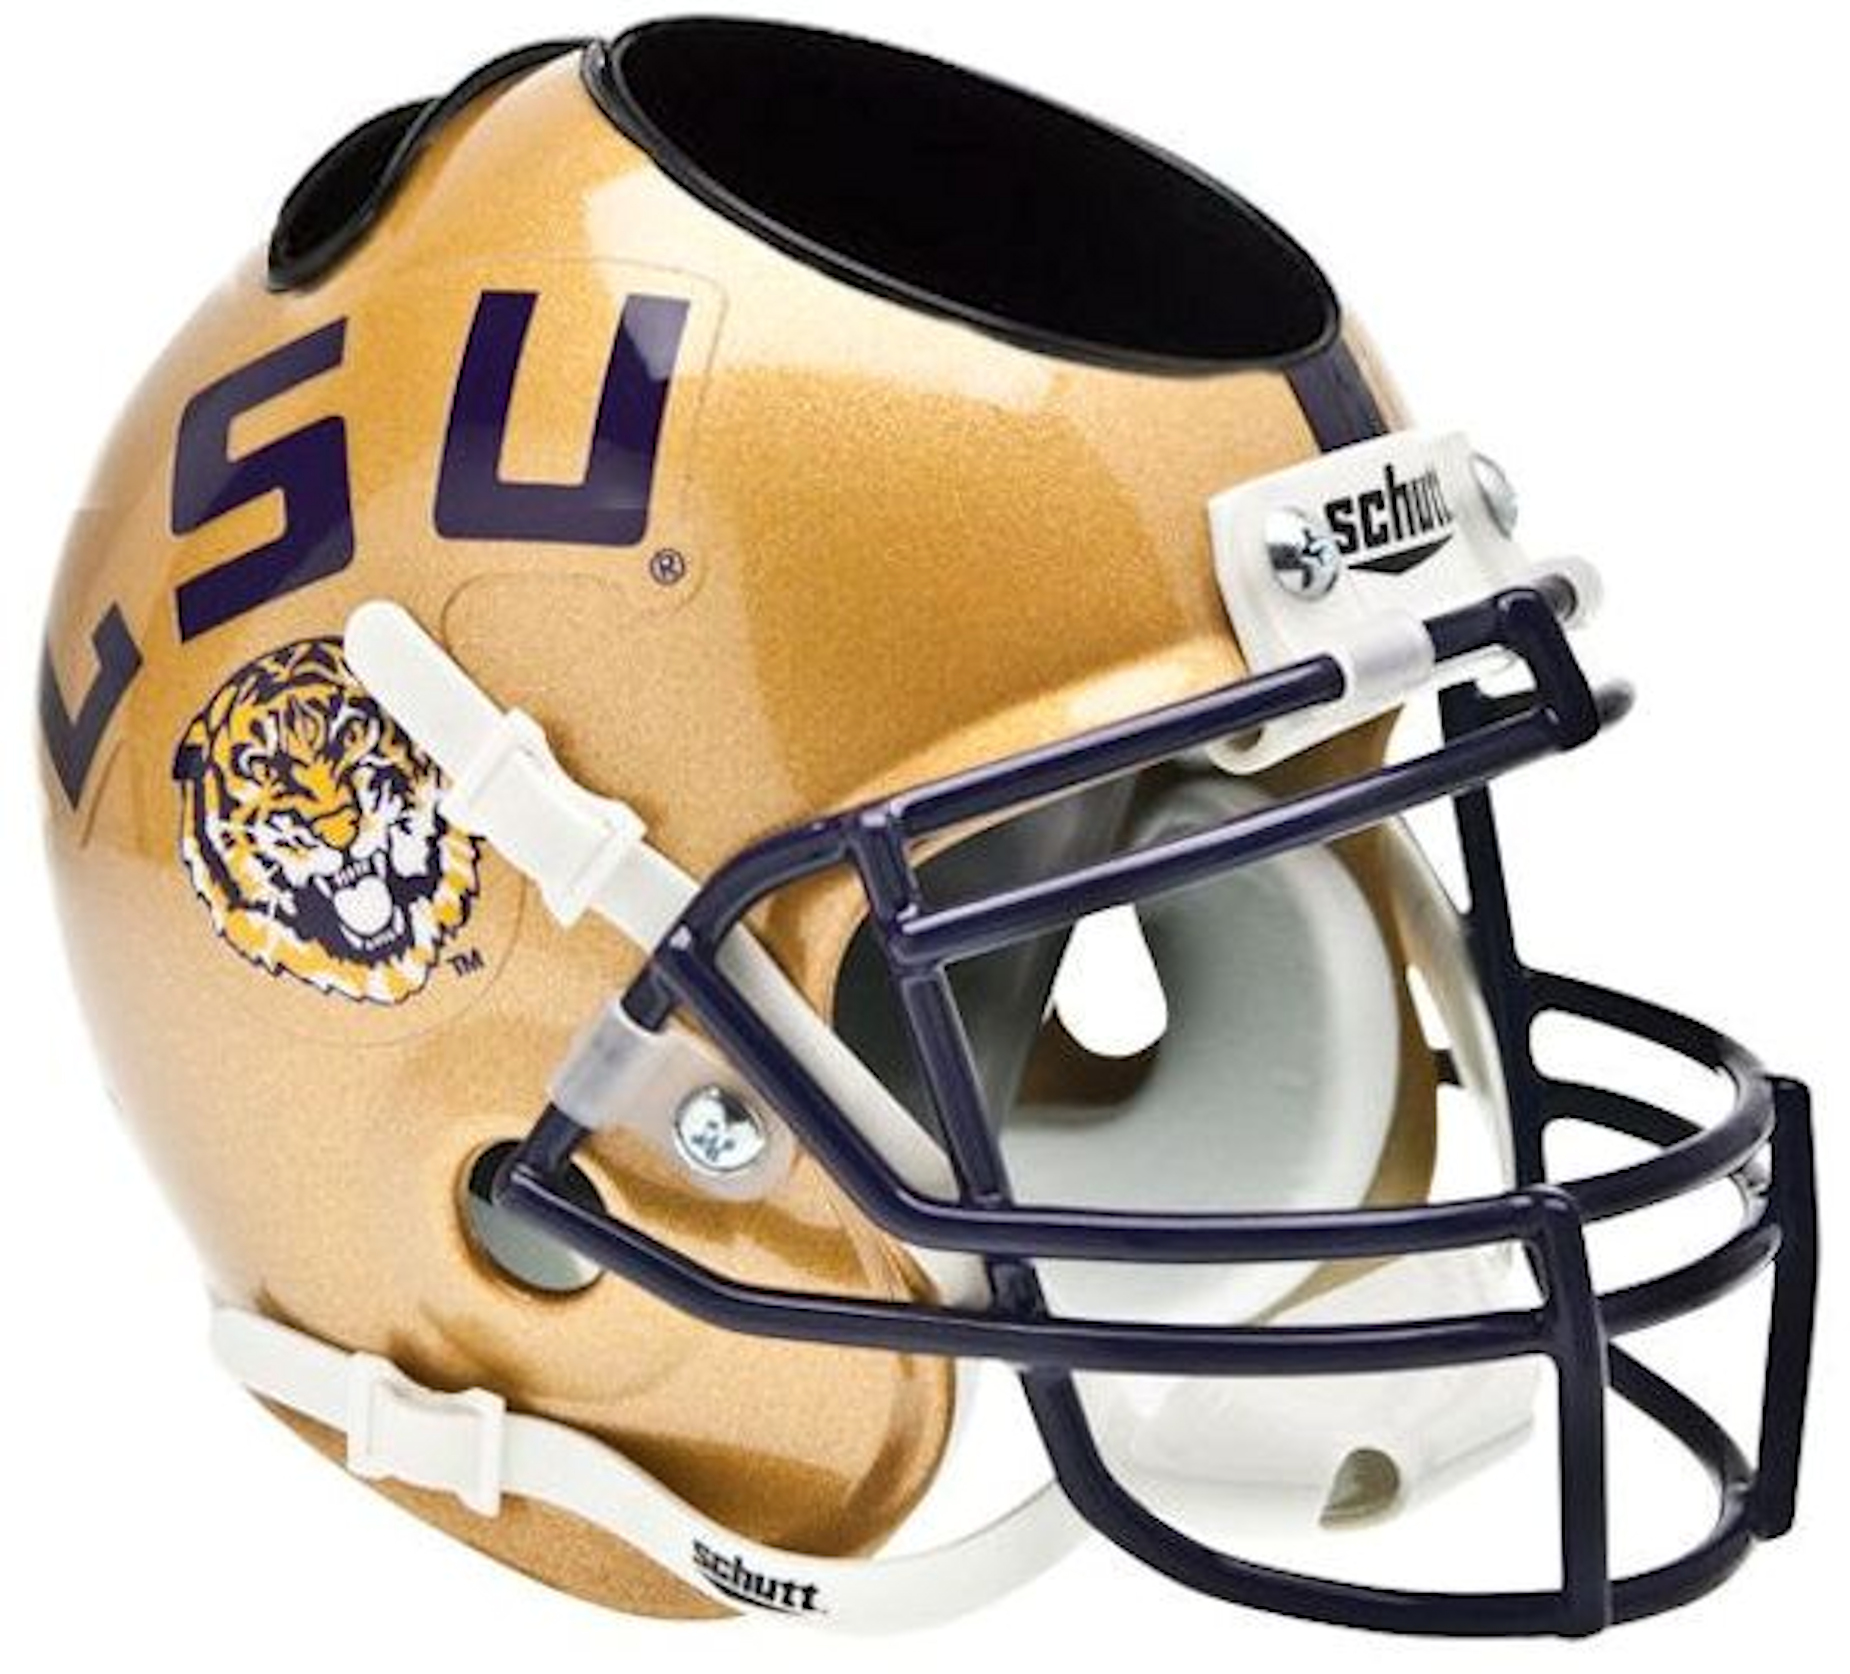 LSU Tigers 2009 Miniature Football Helmet Desk Caddy <B>Gold</B>